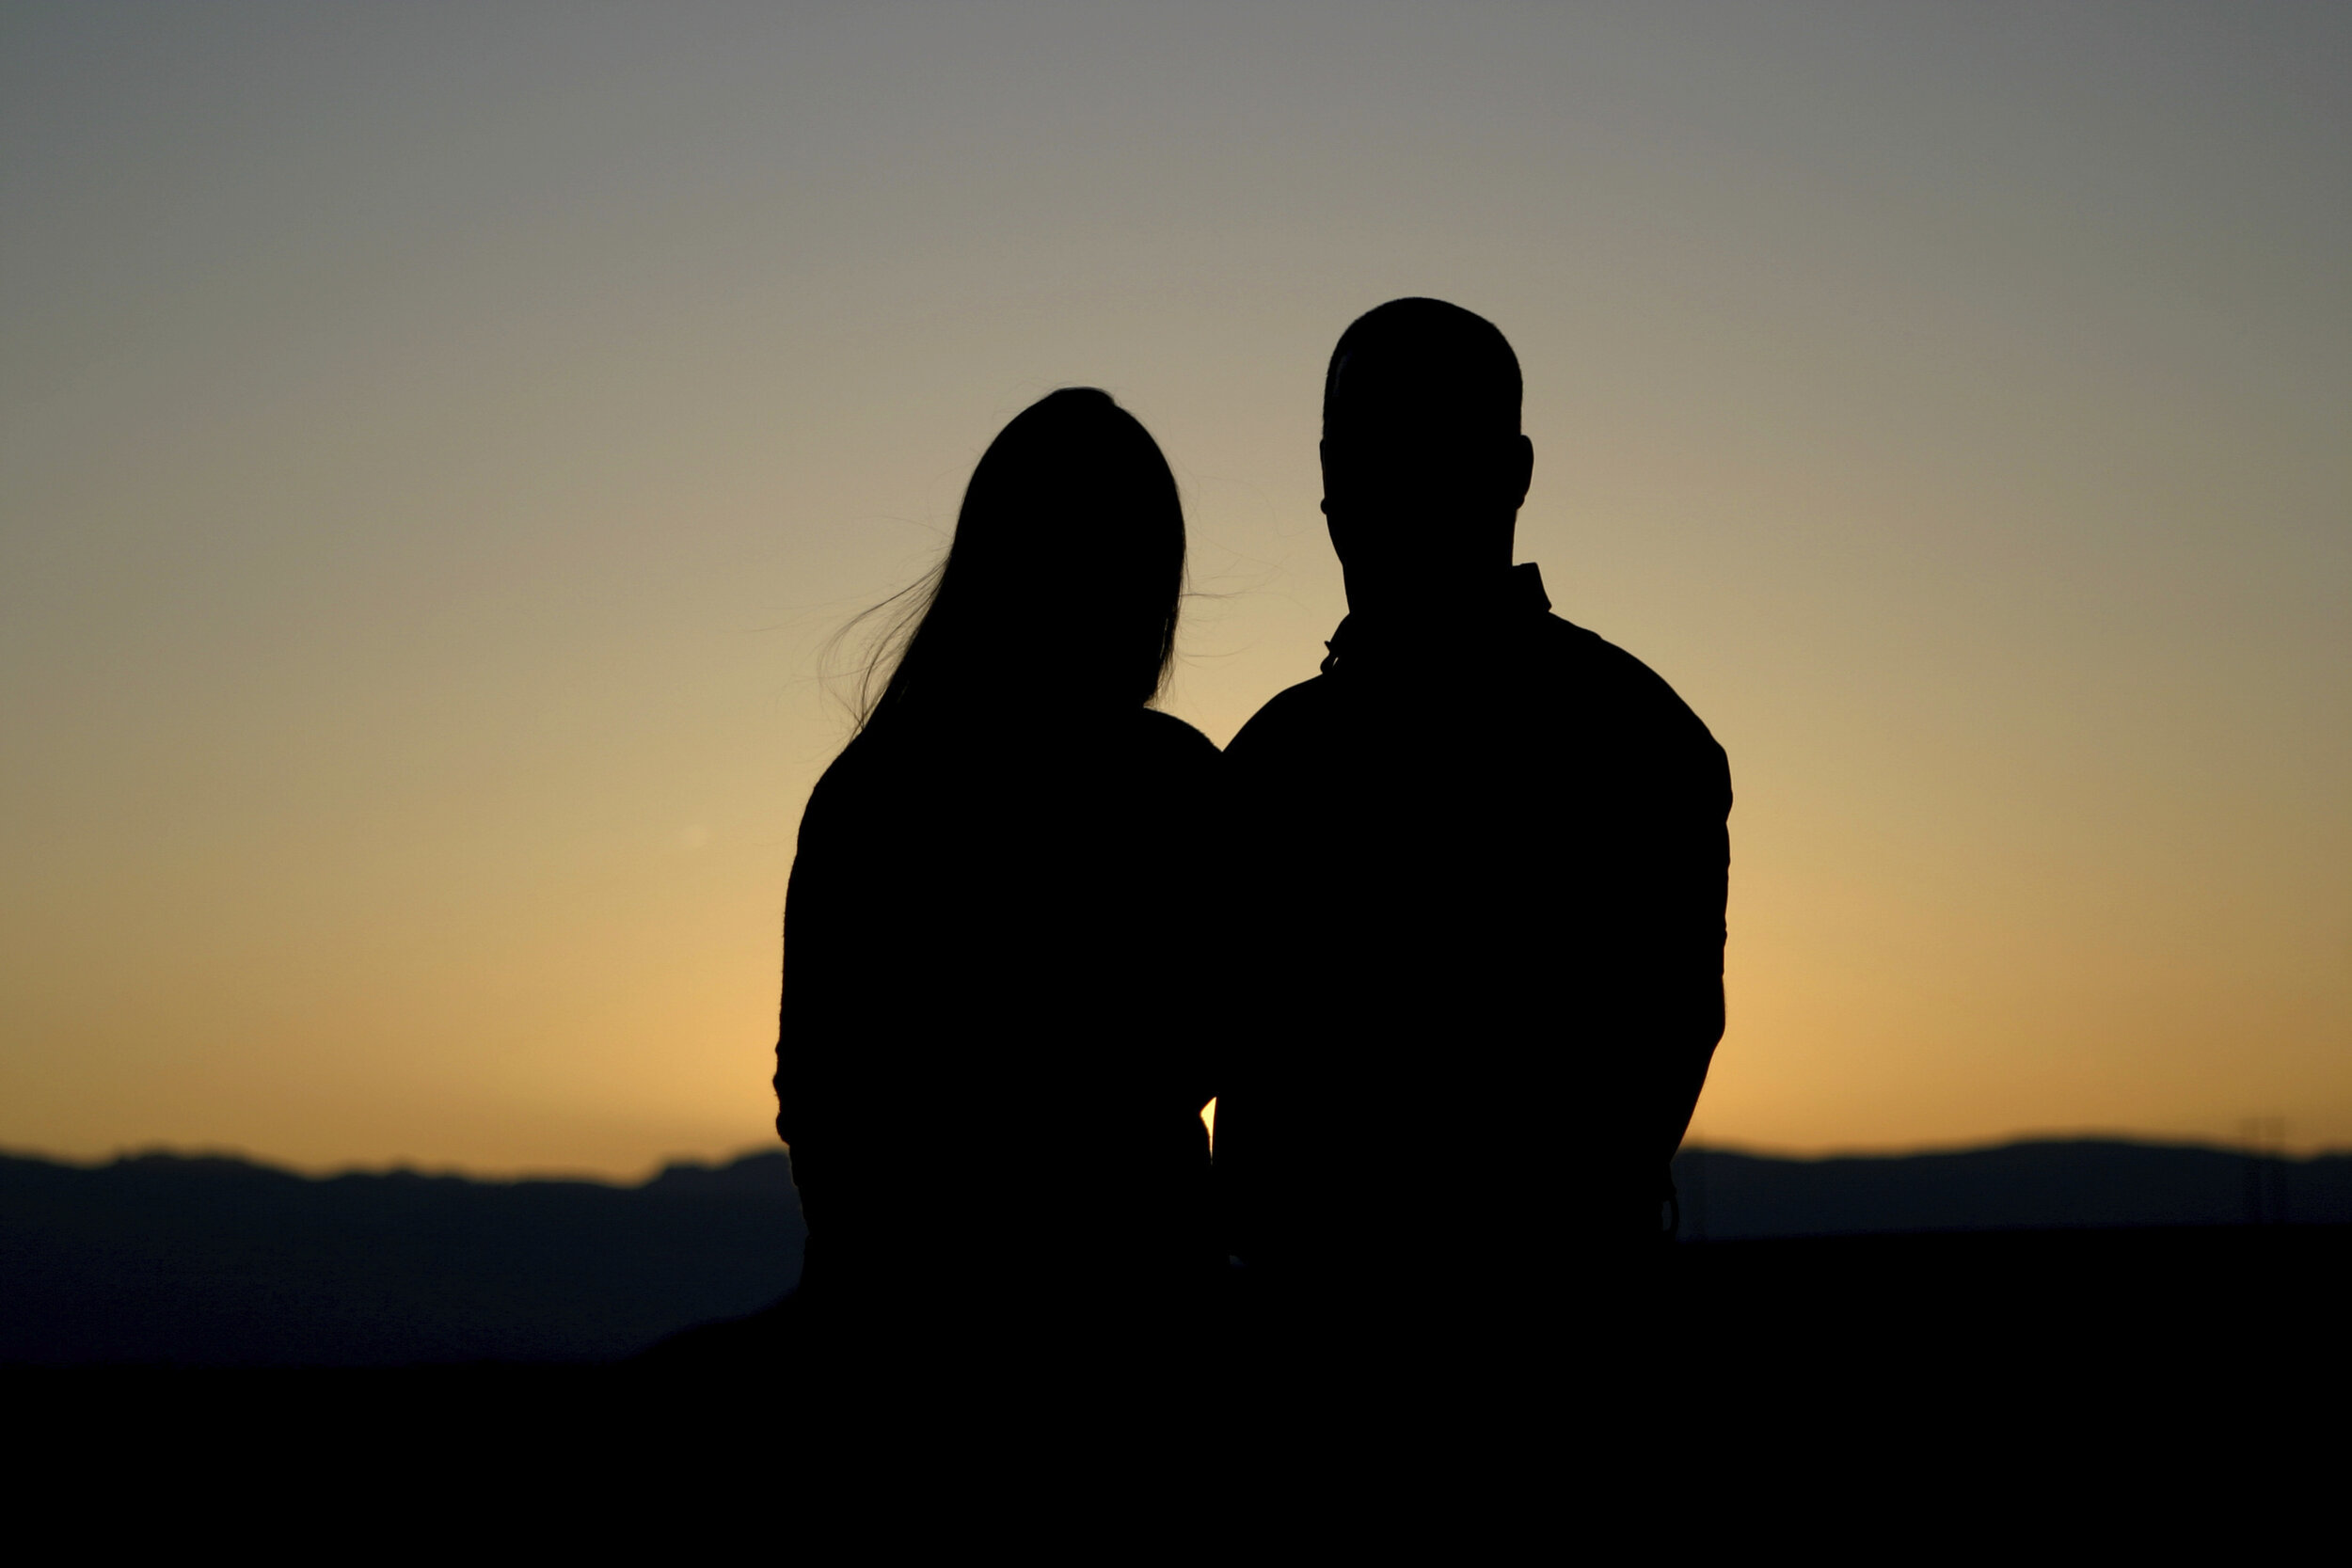 Silhouette of a couple in front of a sunset